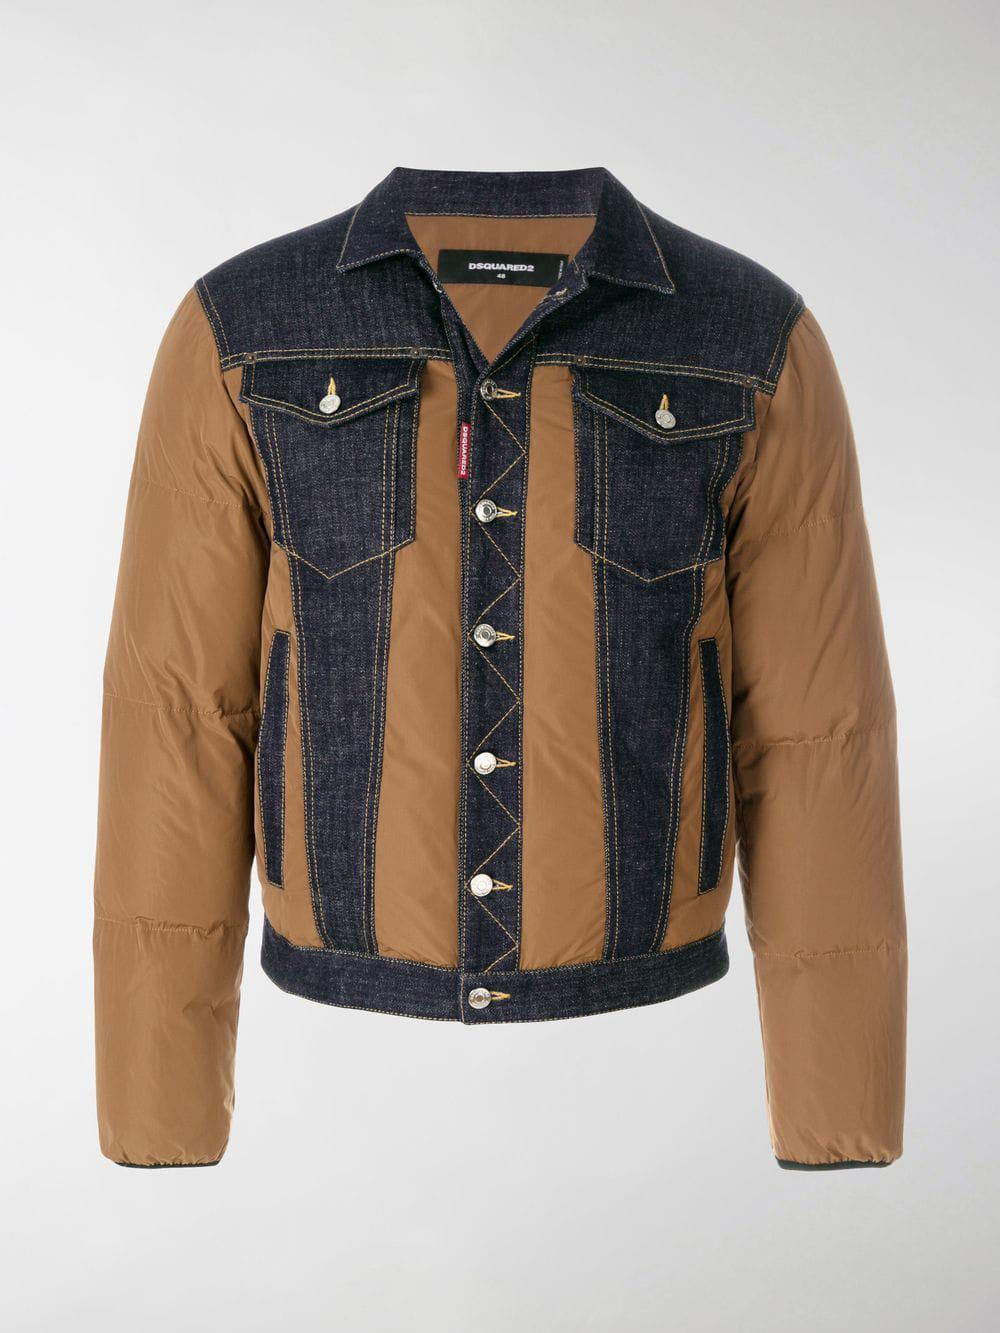 3cc509d03899be Dsquared² Padded Denim Jacket in Brown for Men - Lyst